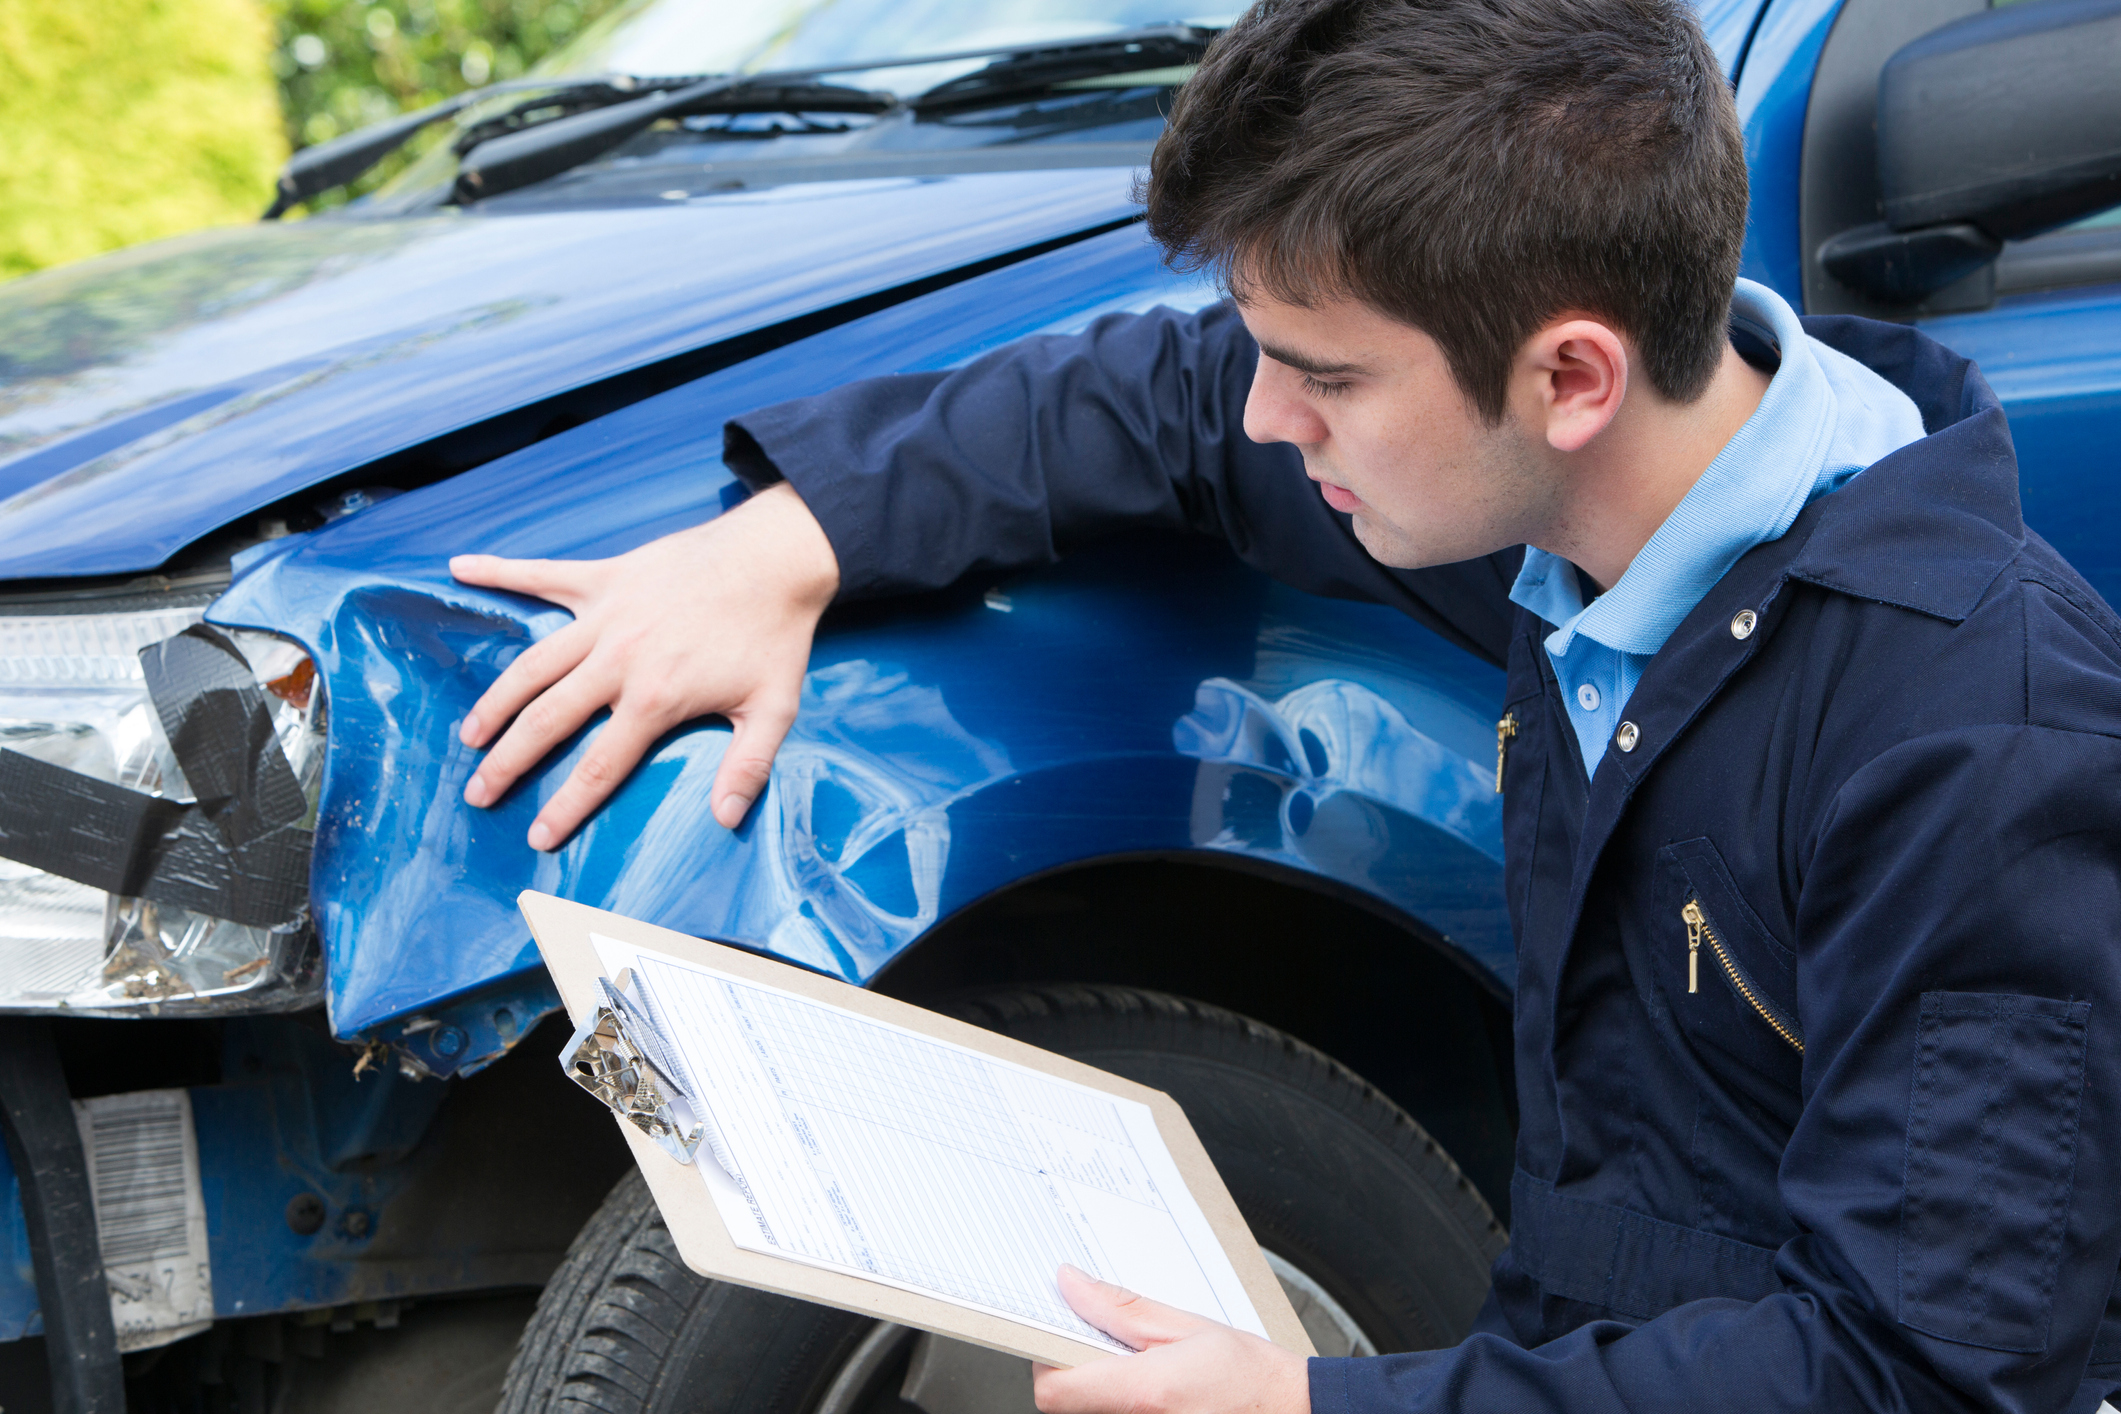 Auto insurance is required in most states and protects you against financial loss.